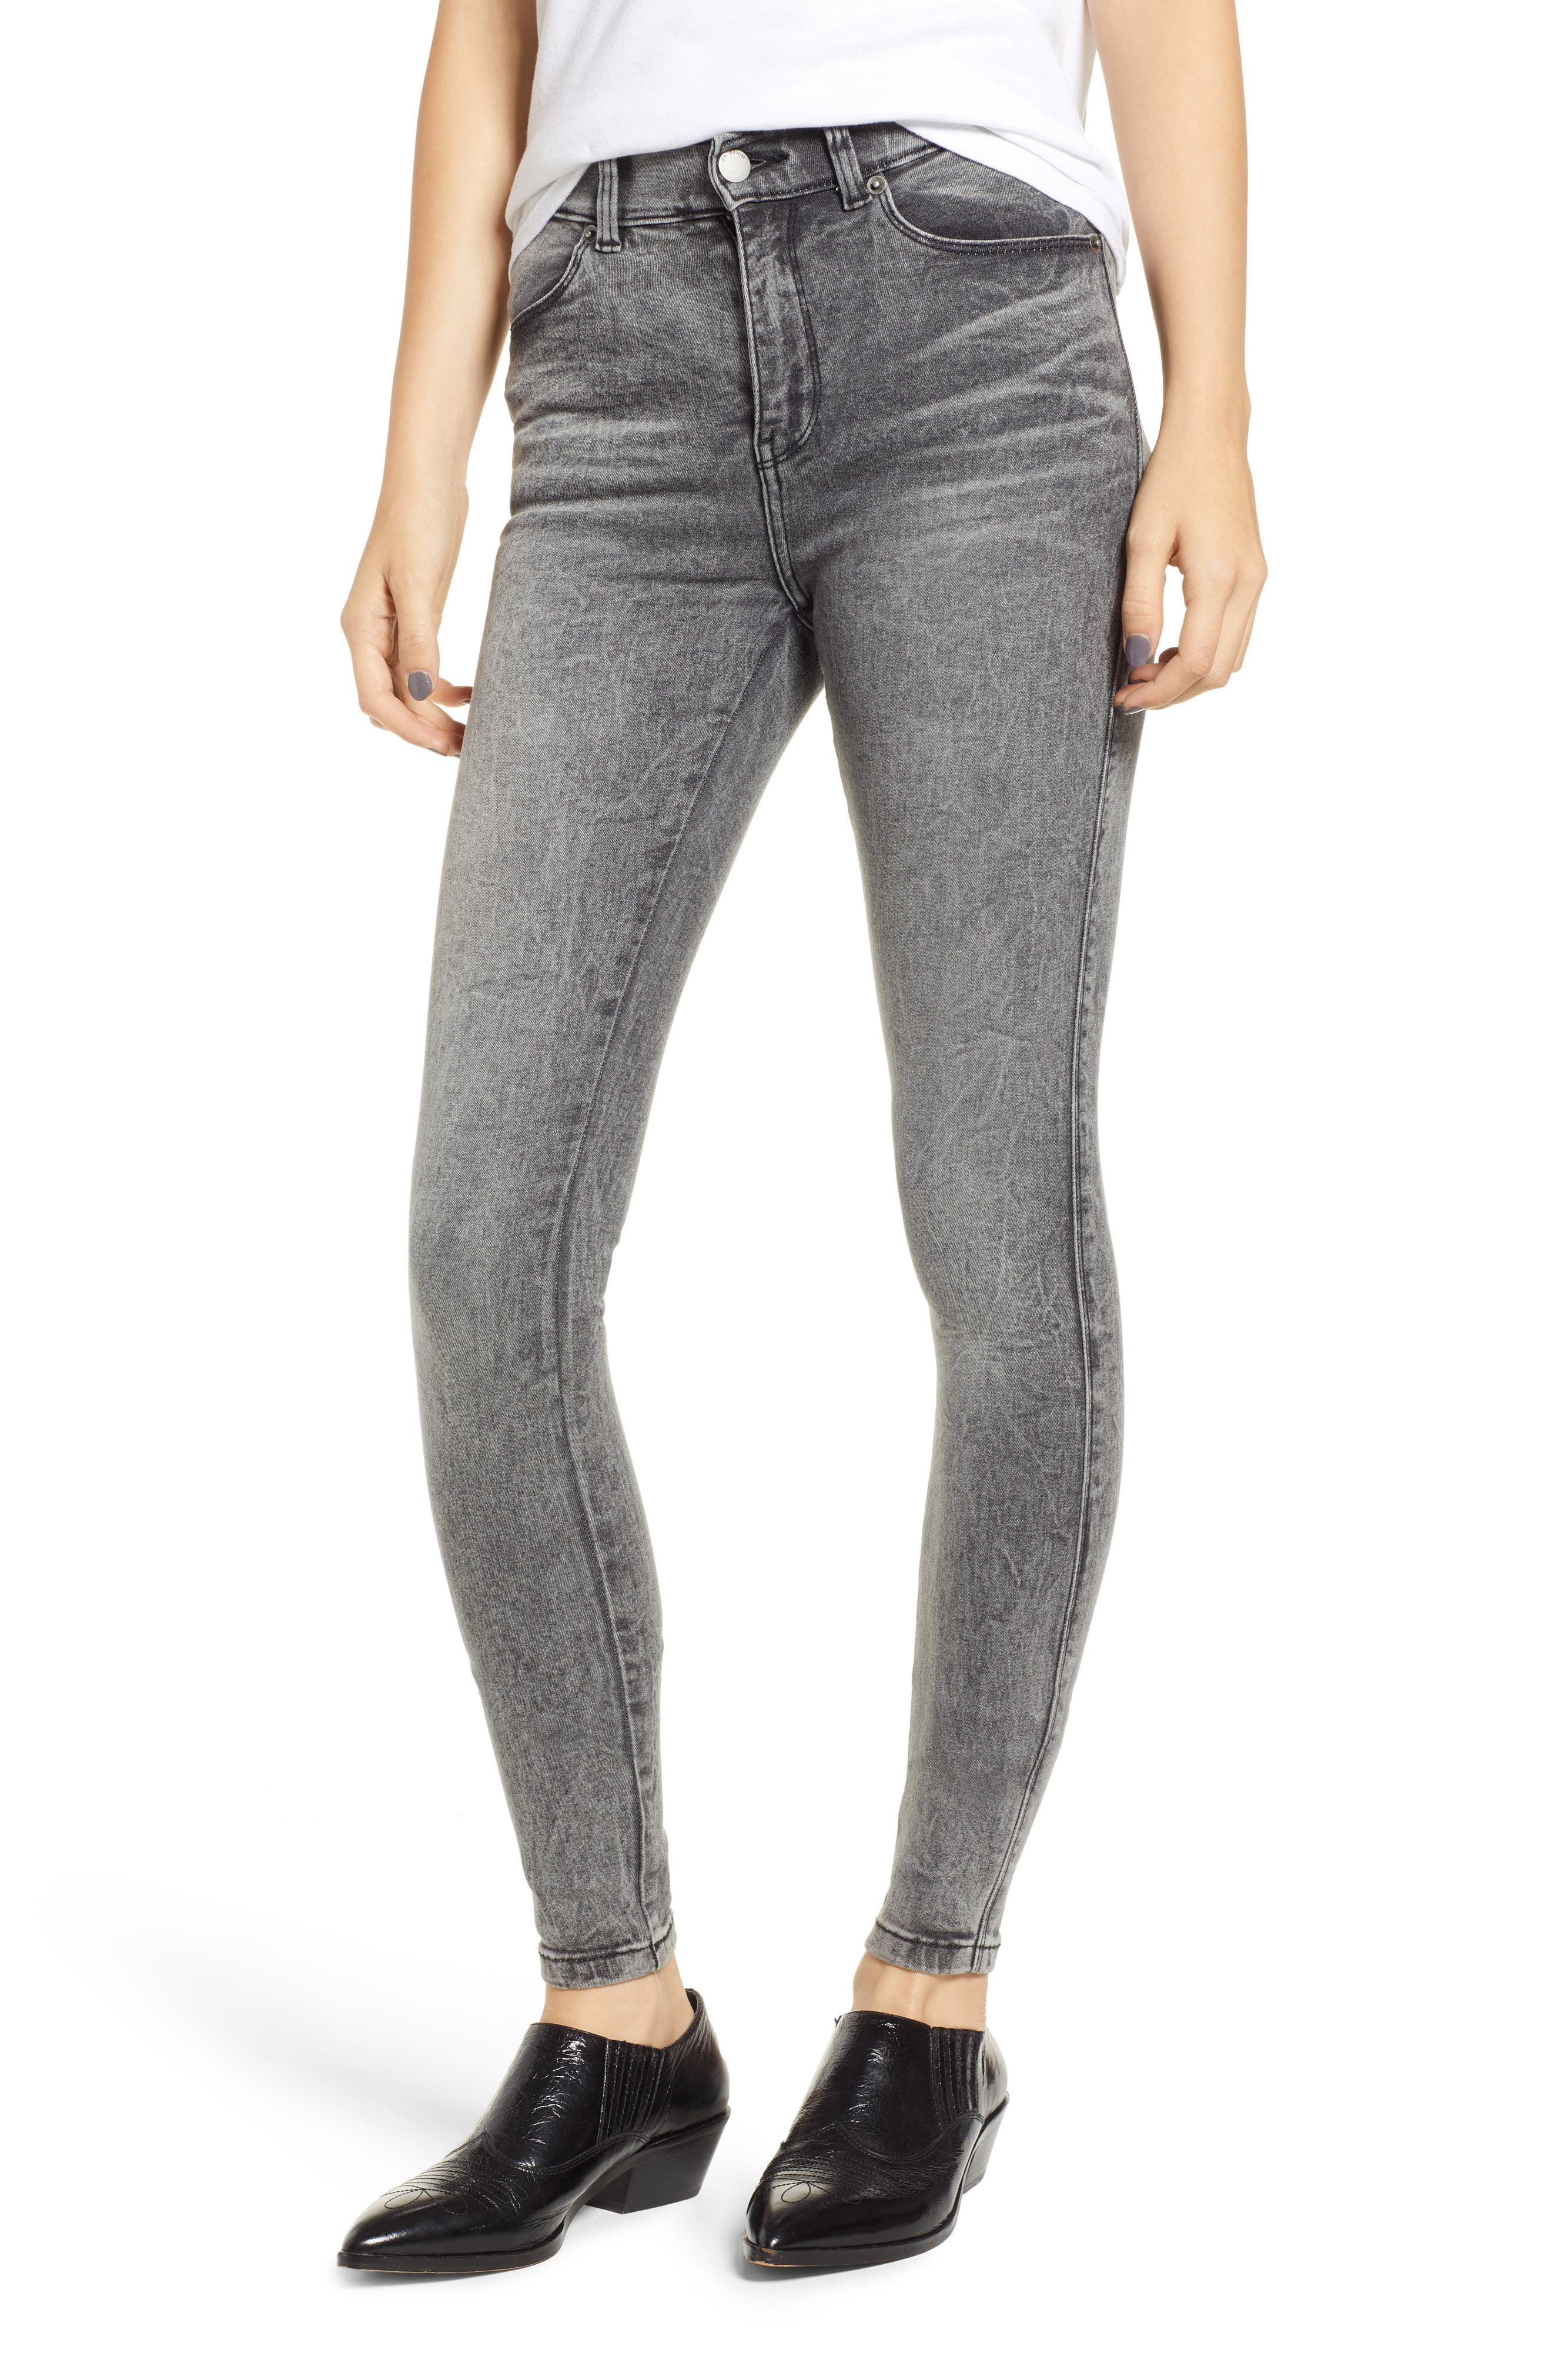 Lexy Skinny Jeans,                             Main thumbnail 1, color,                             BOULDER GREY